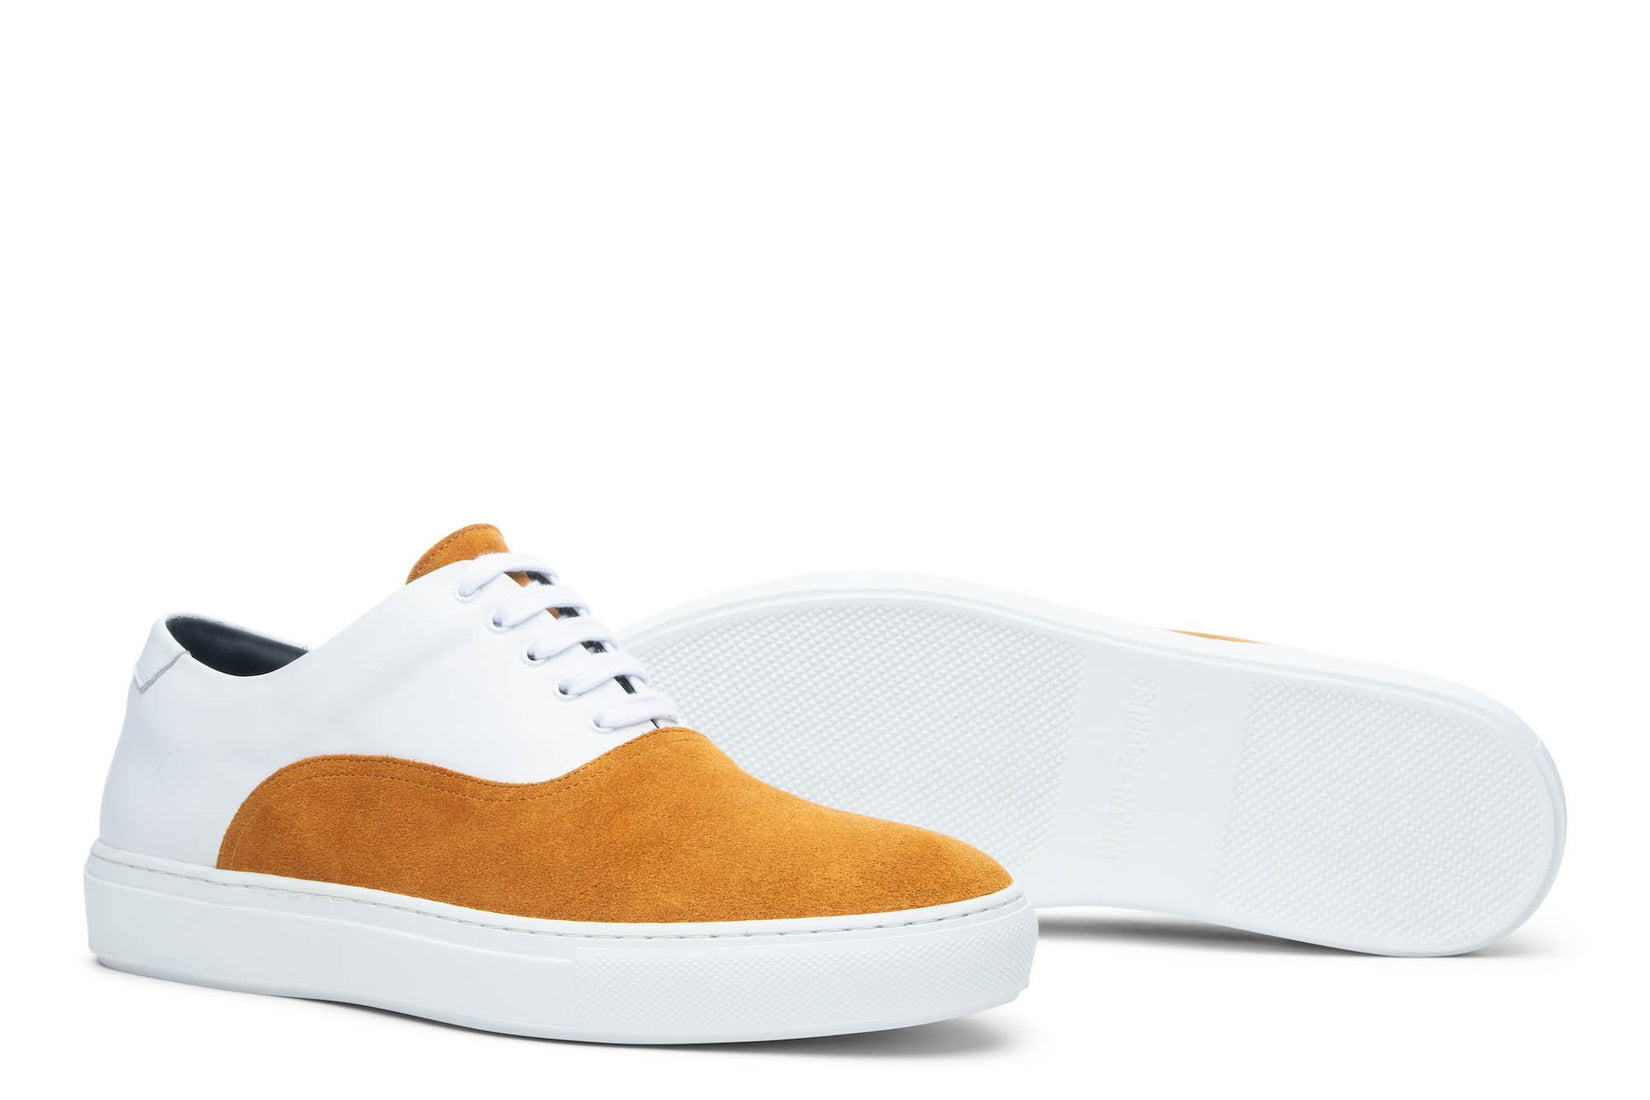 Sunday Two-Tone Skater Sneaker in White/Marigold (FINAL SALE)